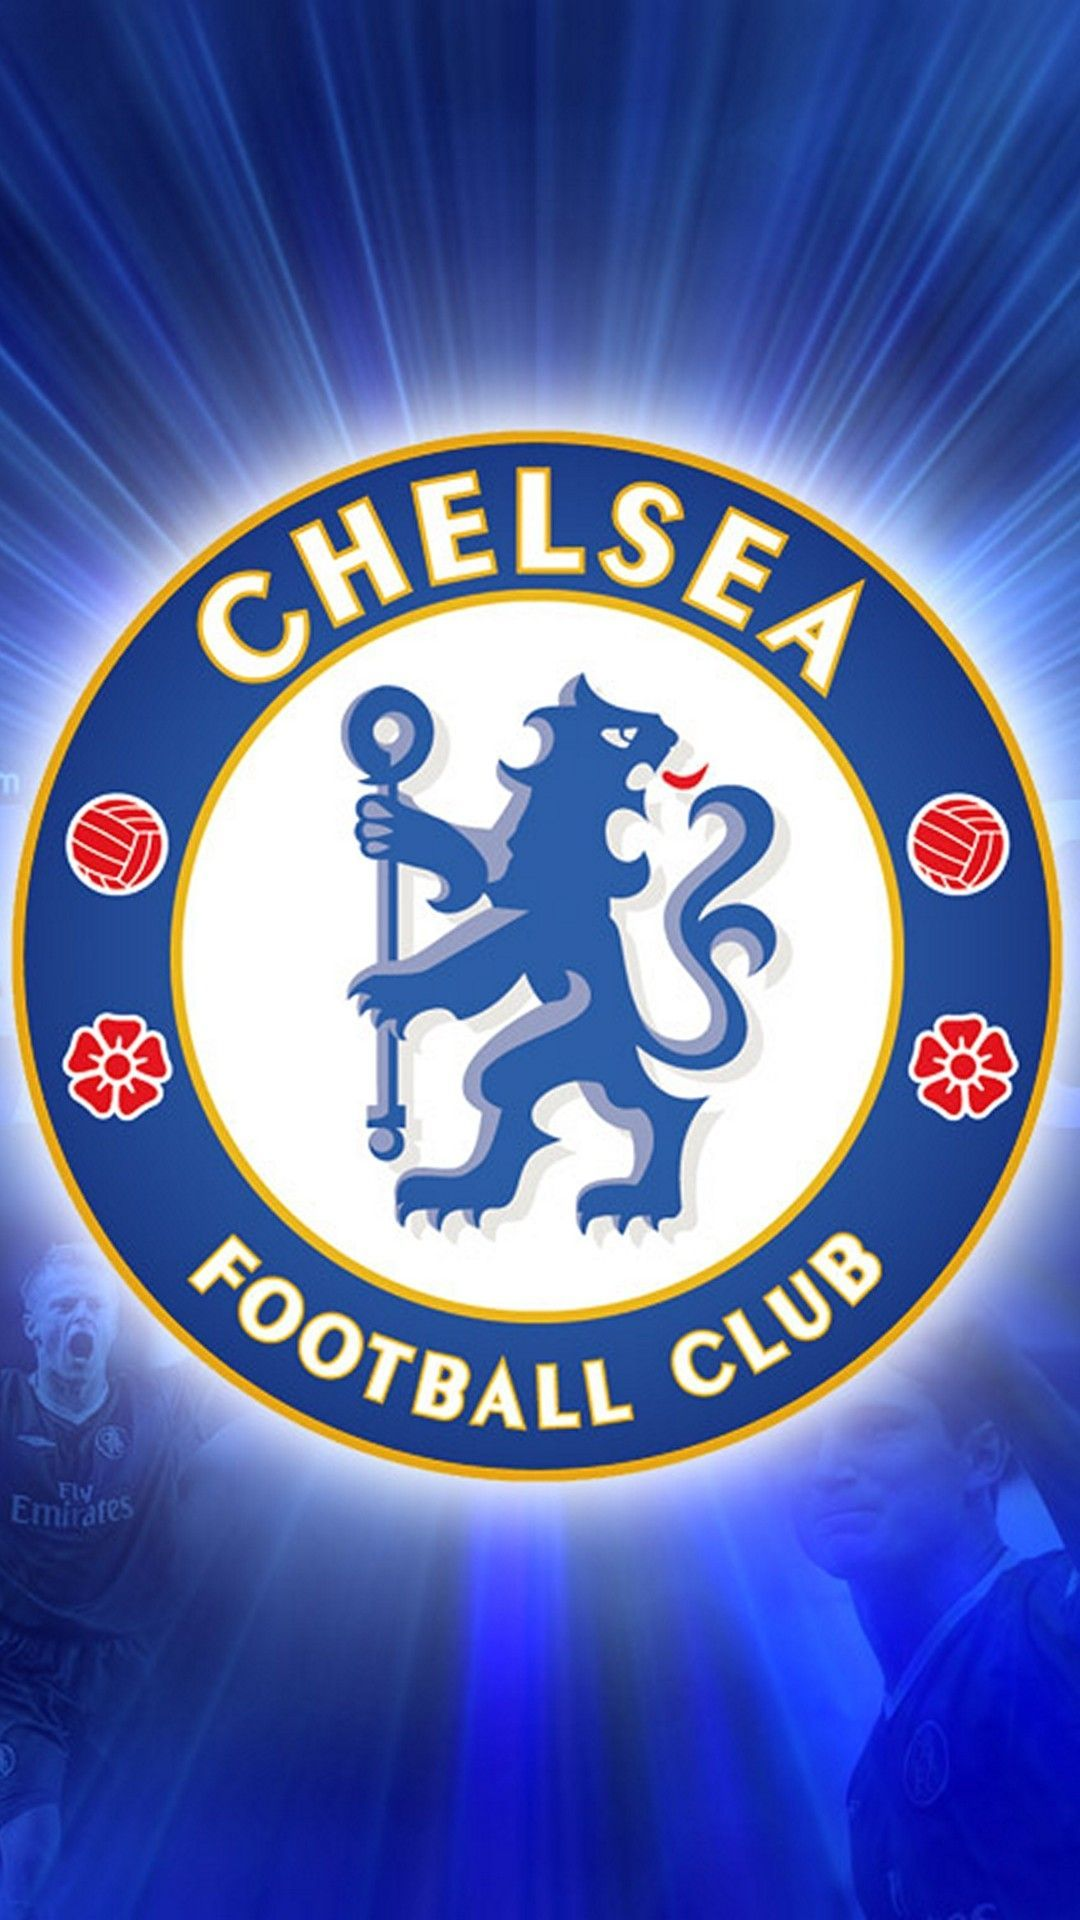 Chelsea Iphone Wallpapers Top Free Chelsea Iphone Backgrounds Wallpaperaccess